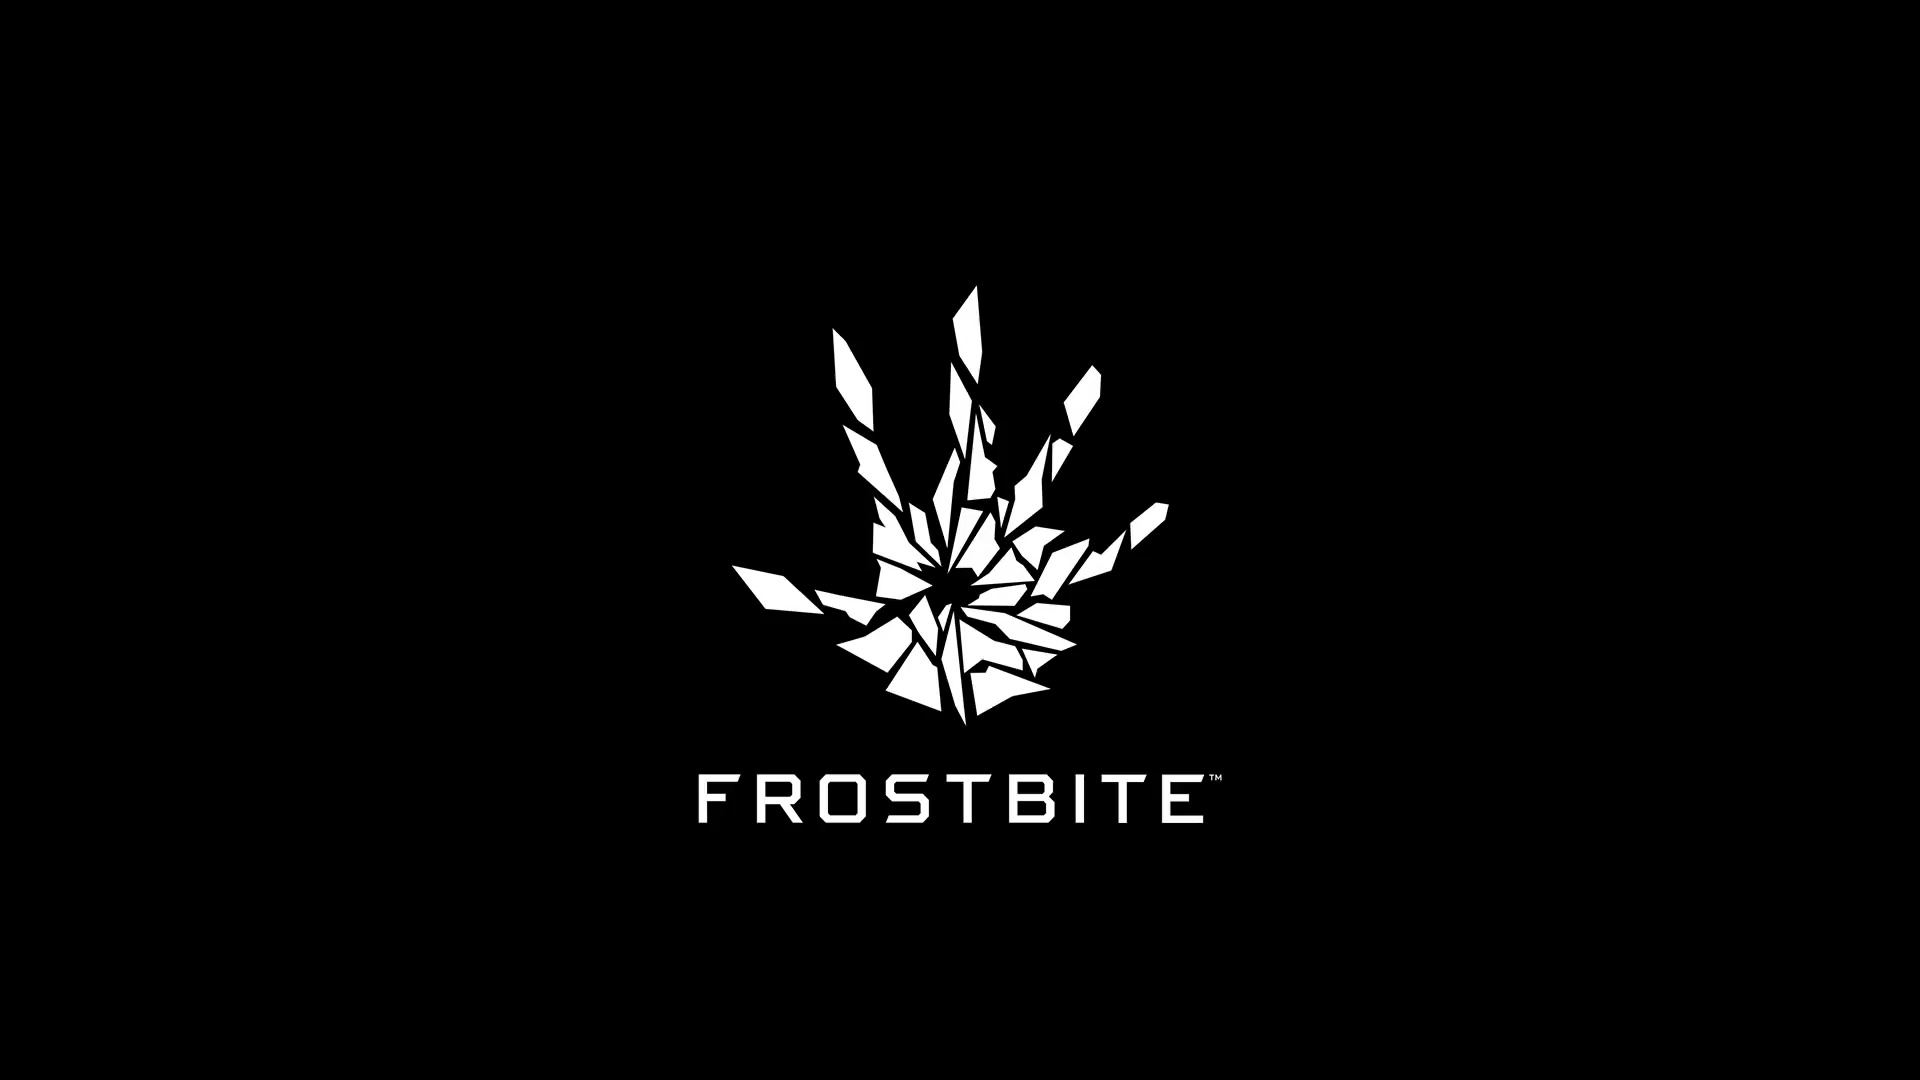 Frostbite Wallpapers HD Backgrounds Images Pics Photos 1920x1080